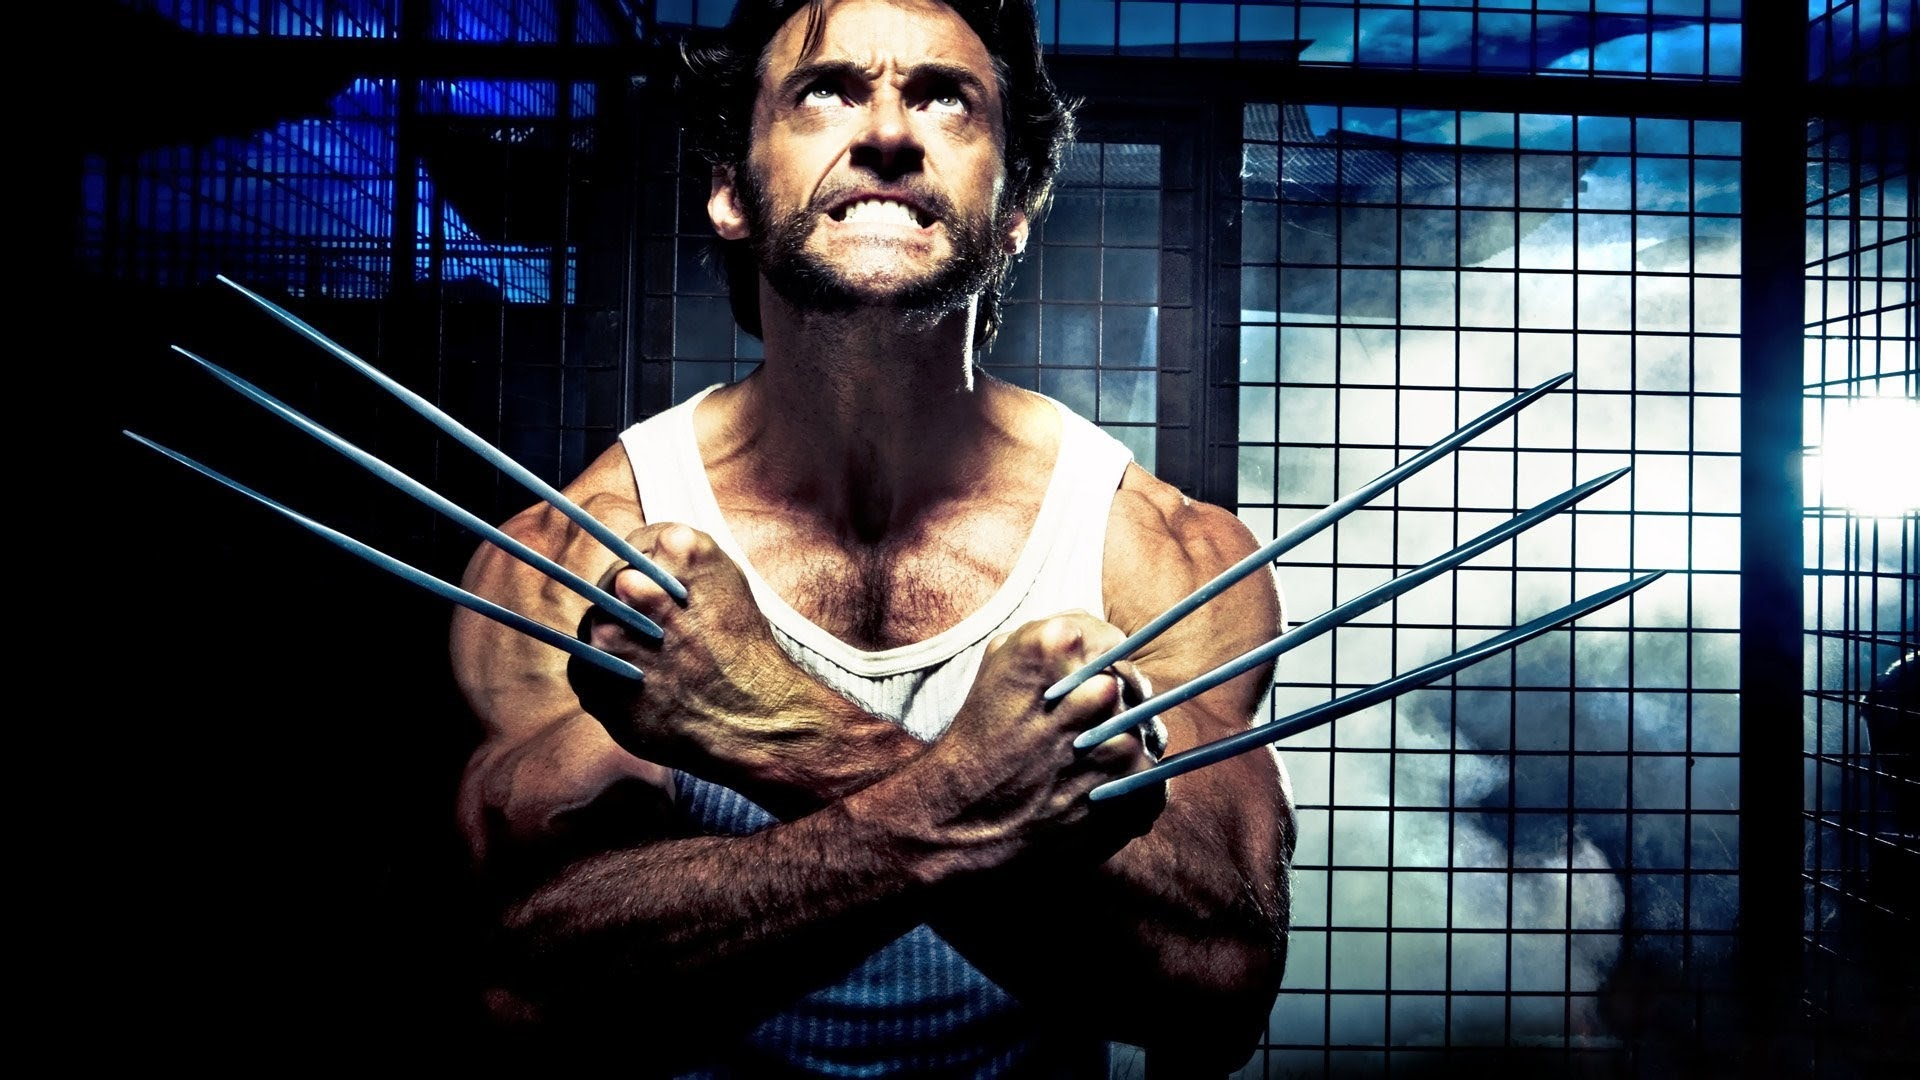 wolverine xmen free desktop wallpaper